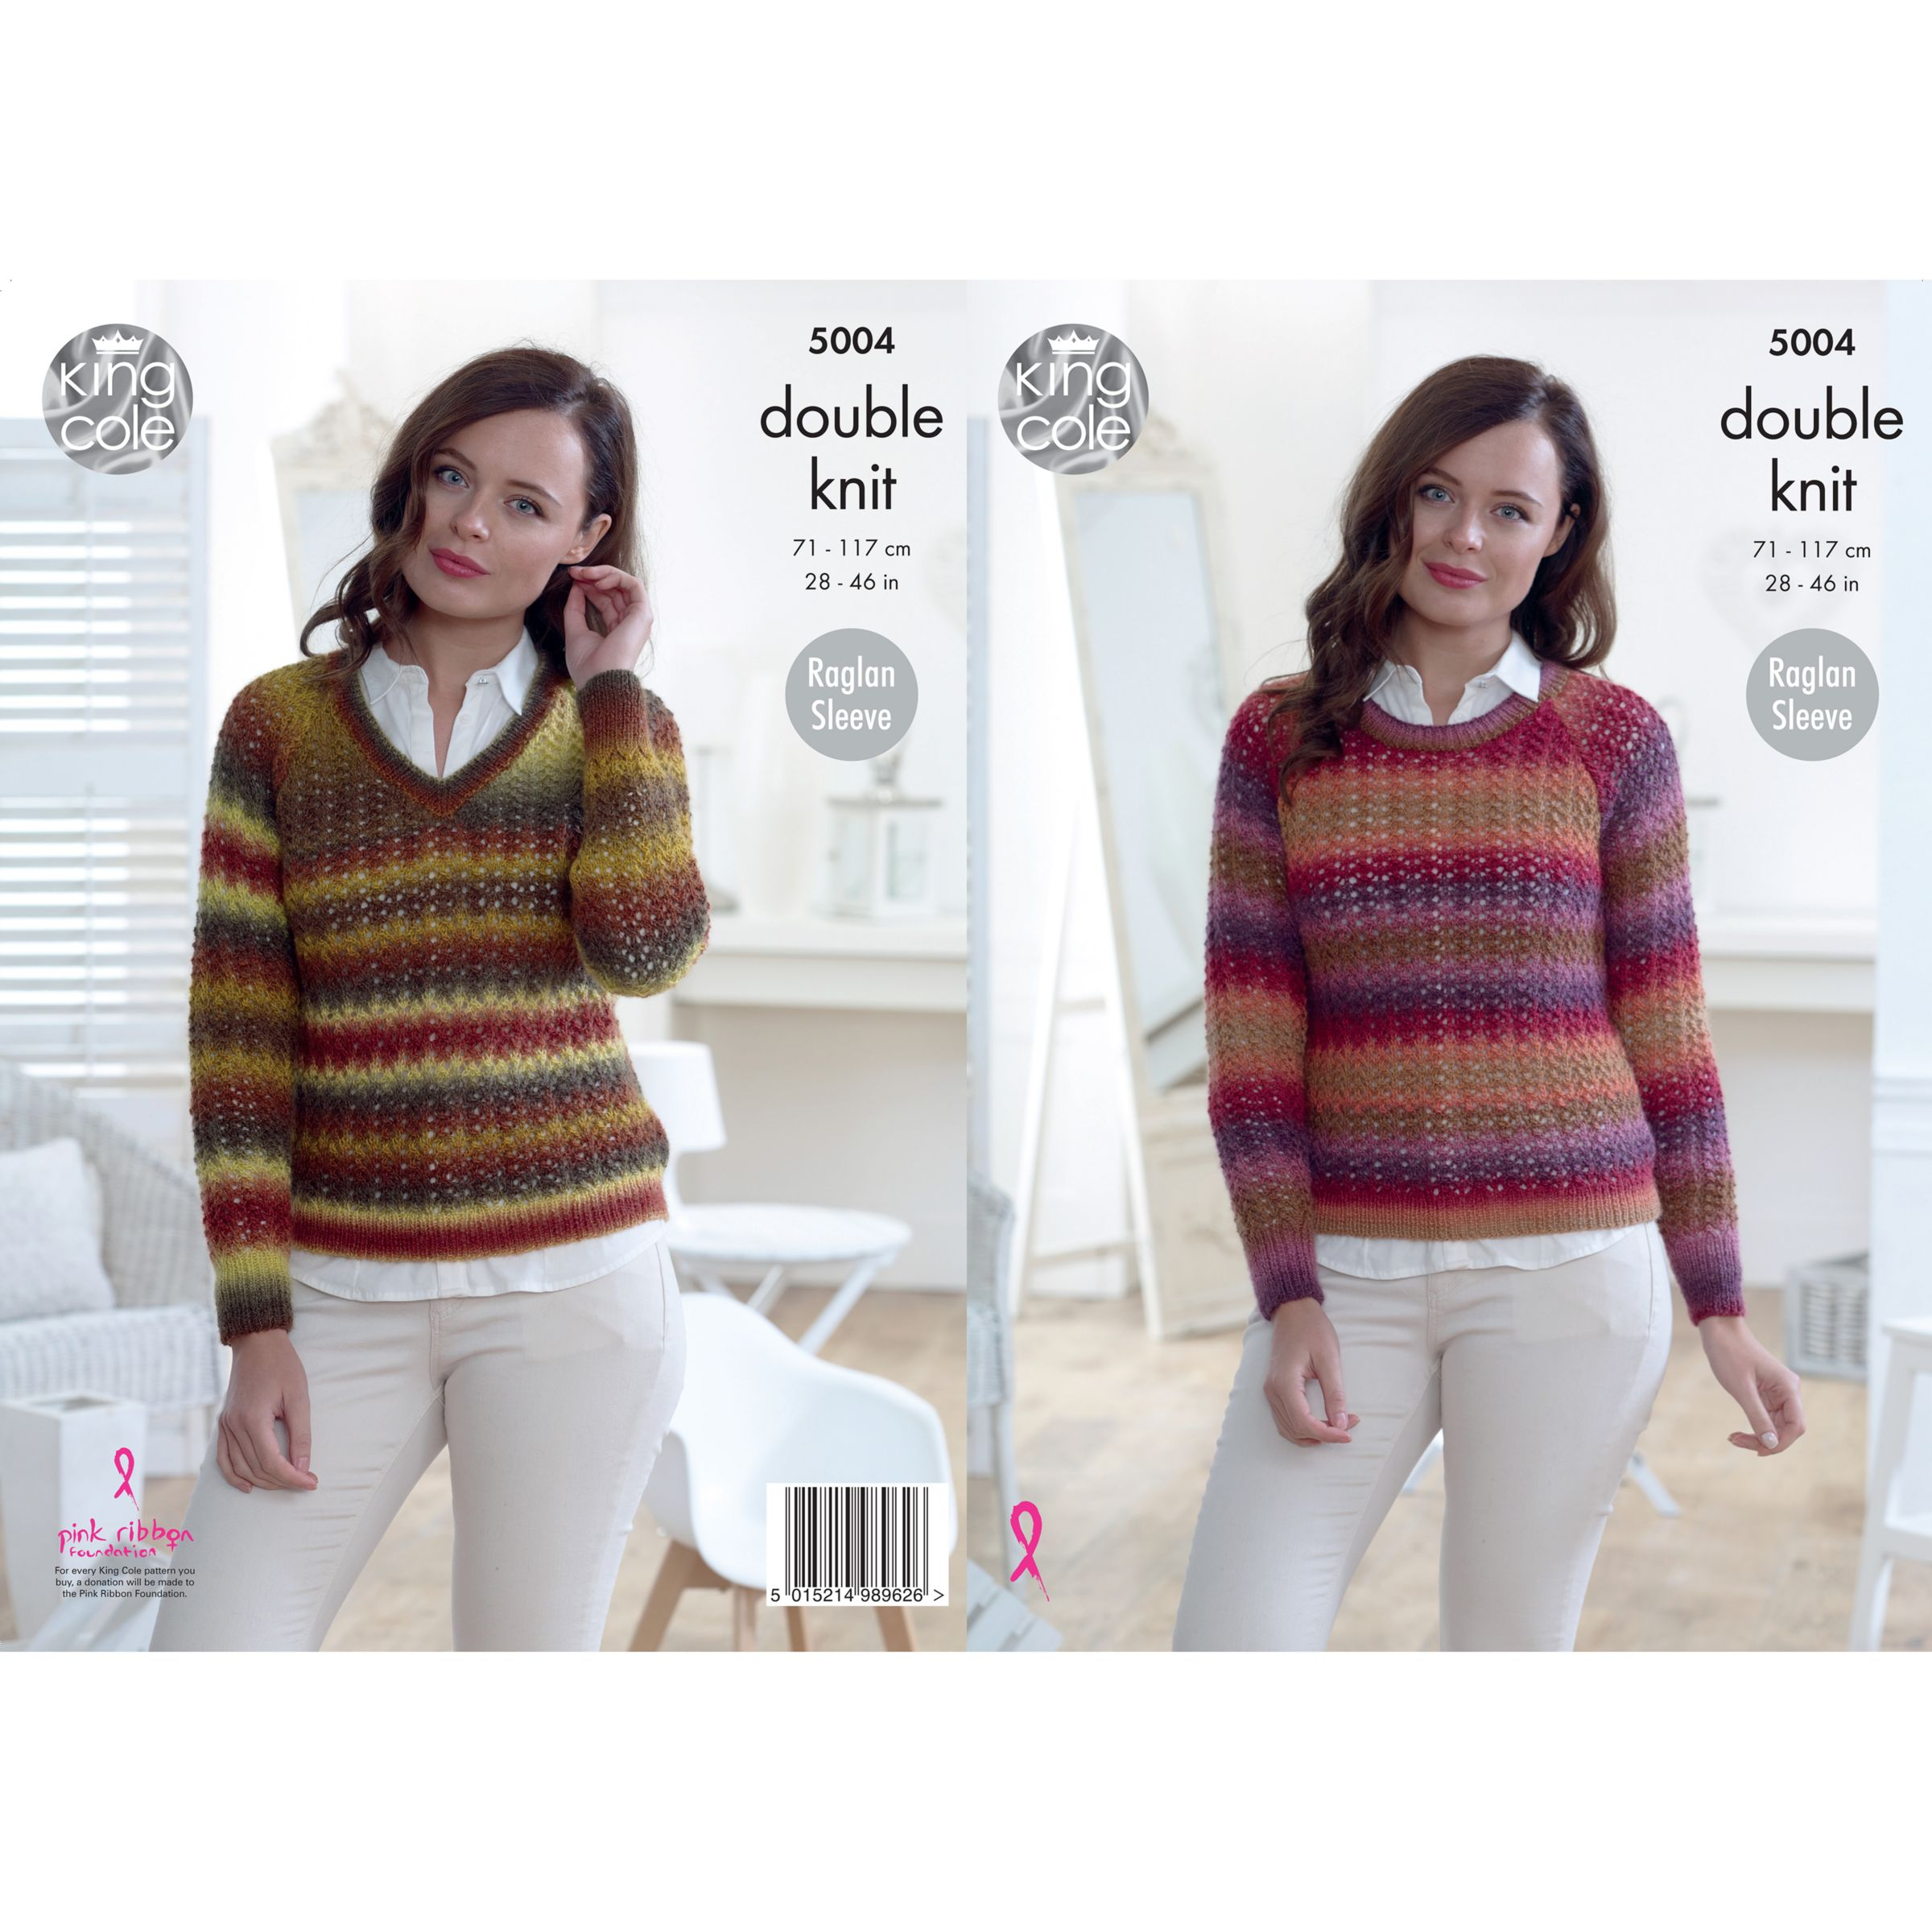 a10b8b2a2 King Cole Riot DK Ladies Jumper and Cardigan Knitting Pattern